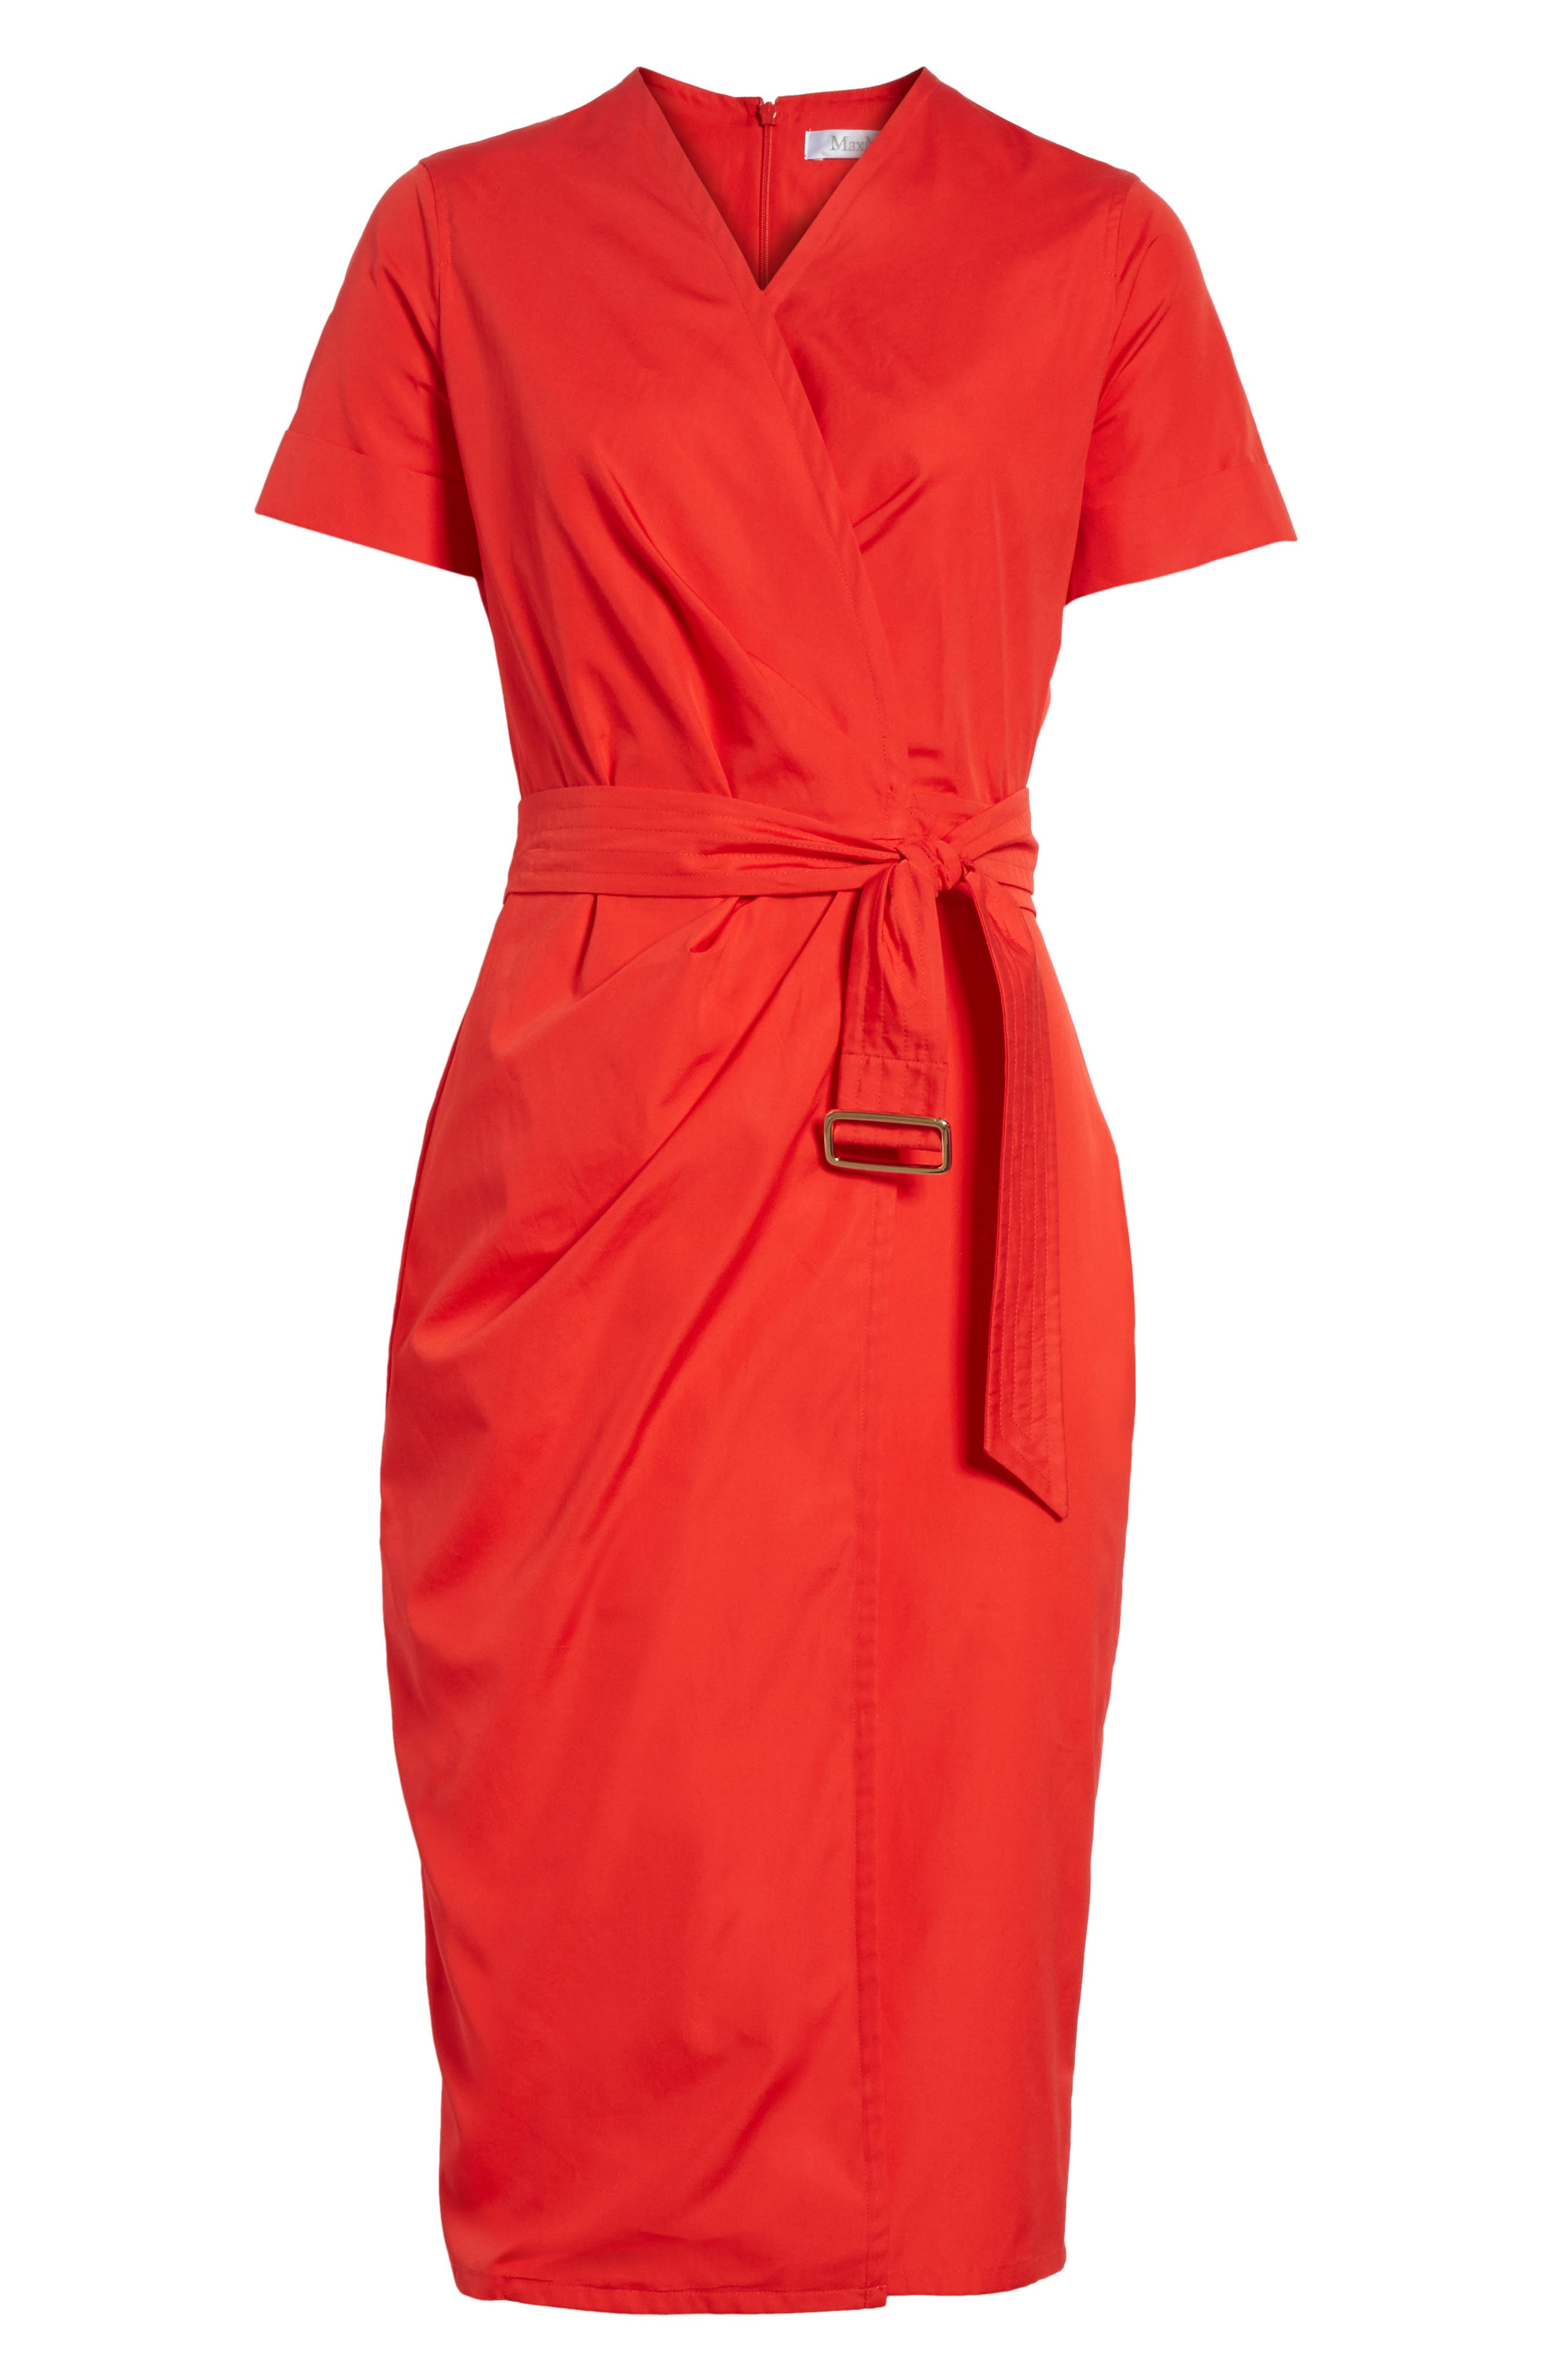 Dalmine Cotton Wrap Dress,                             Alternate thumbnail 6, color,                             Red